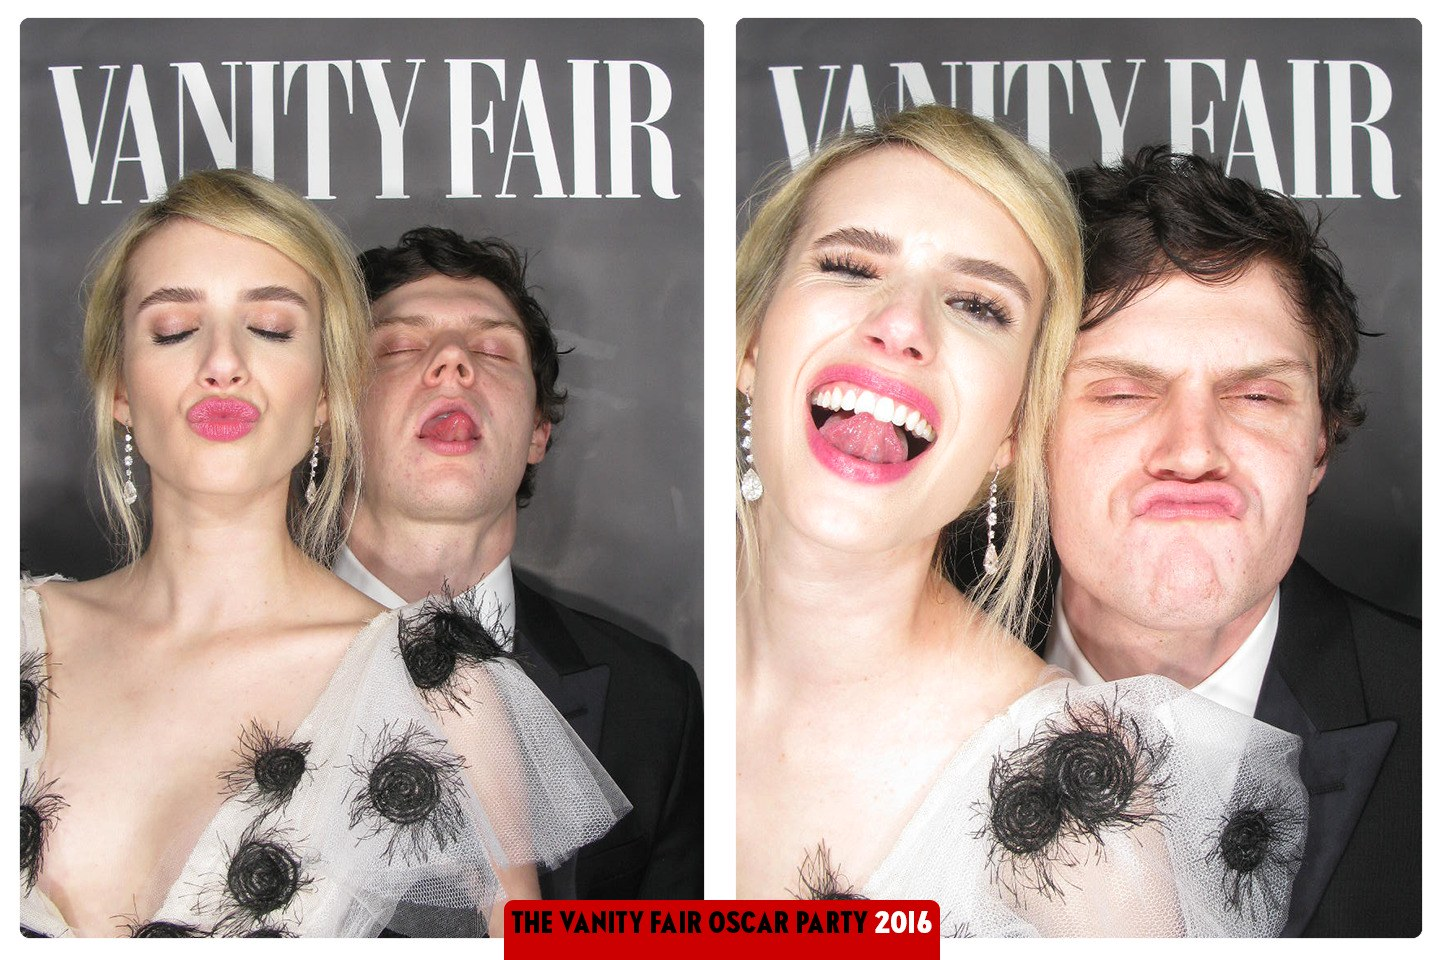 photo-booth-oscar-party-2016-emma-roberts.png